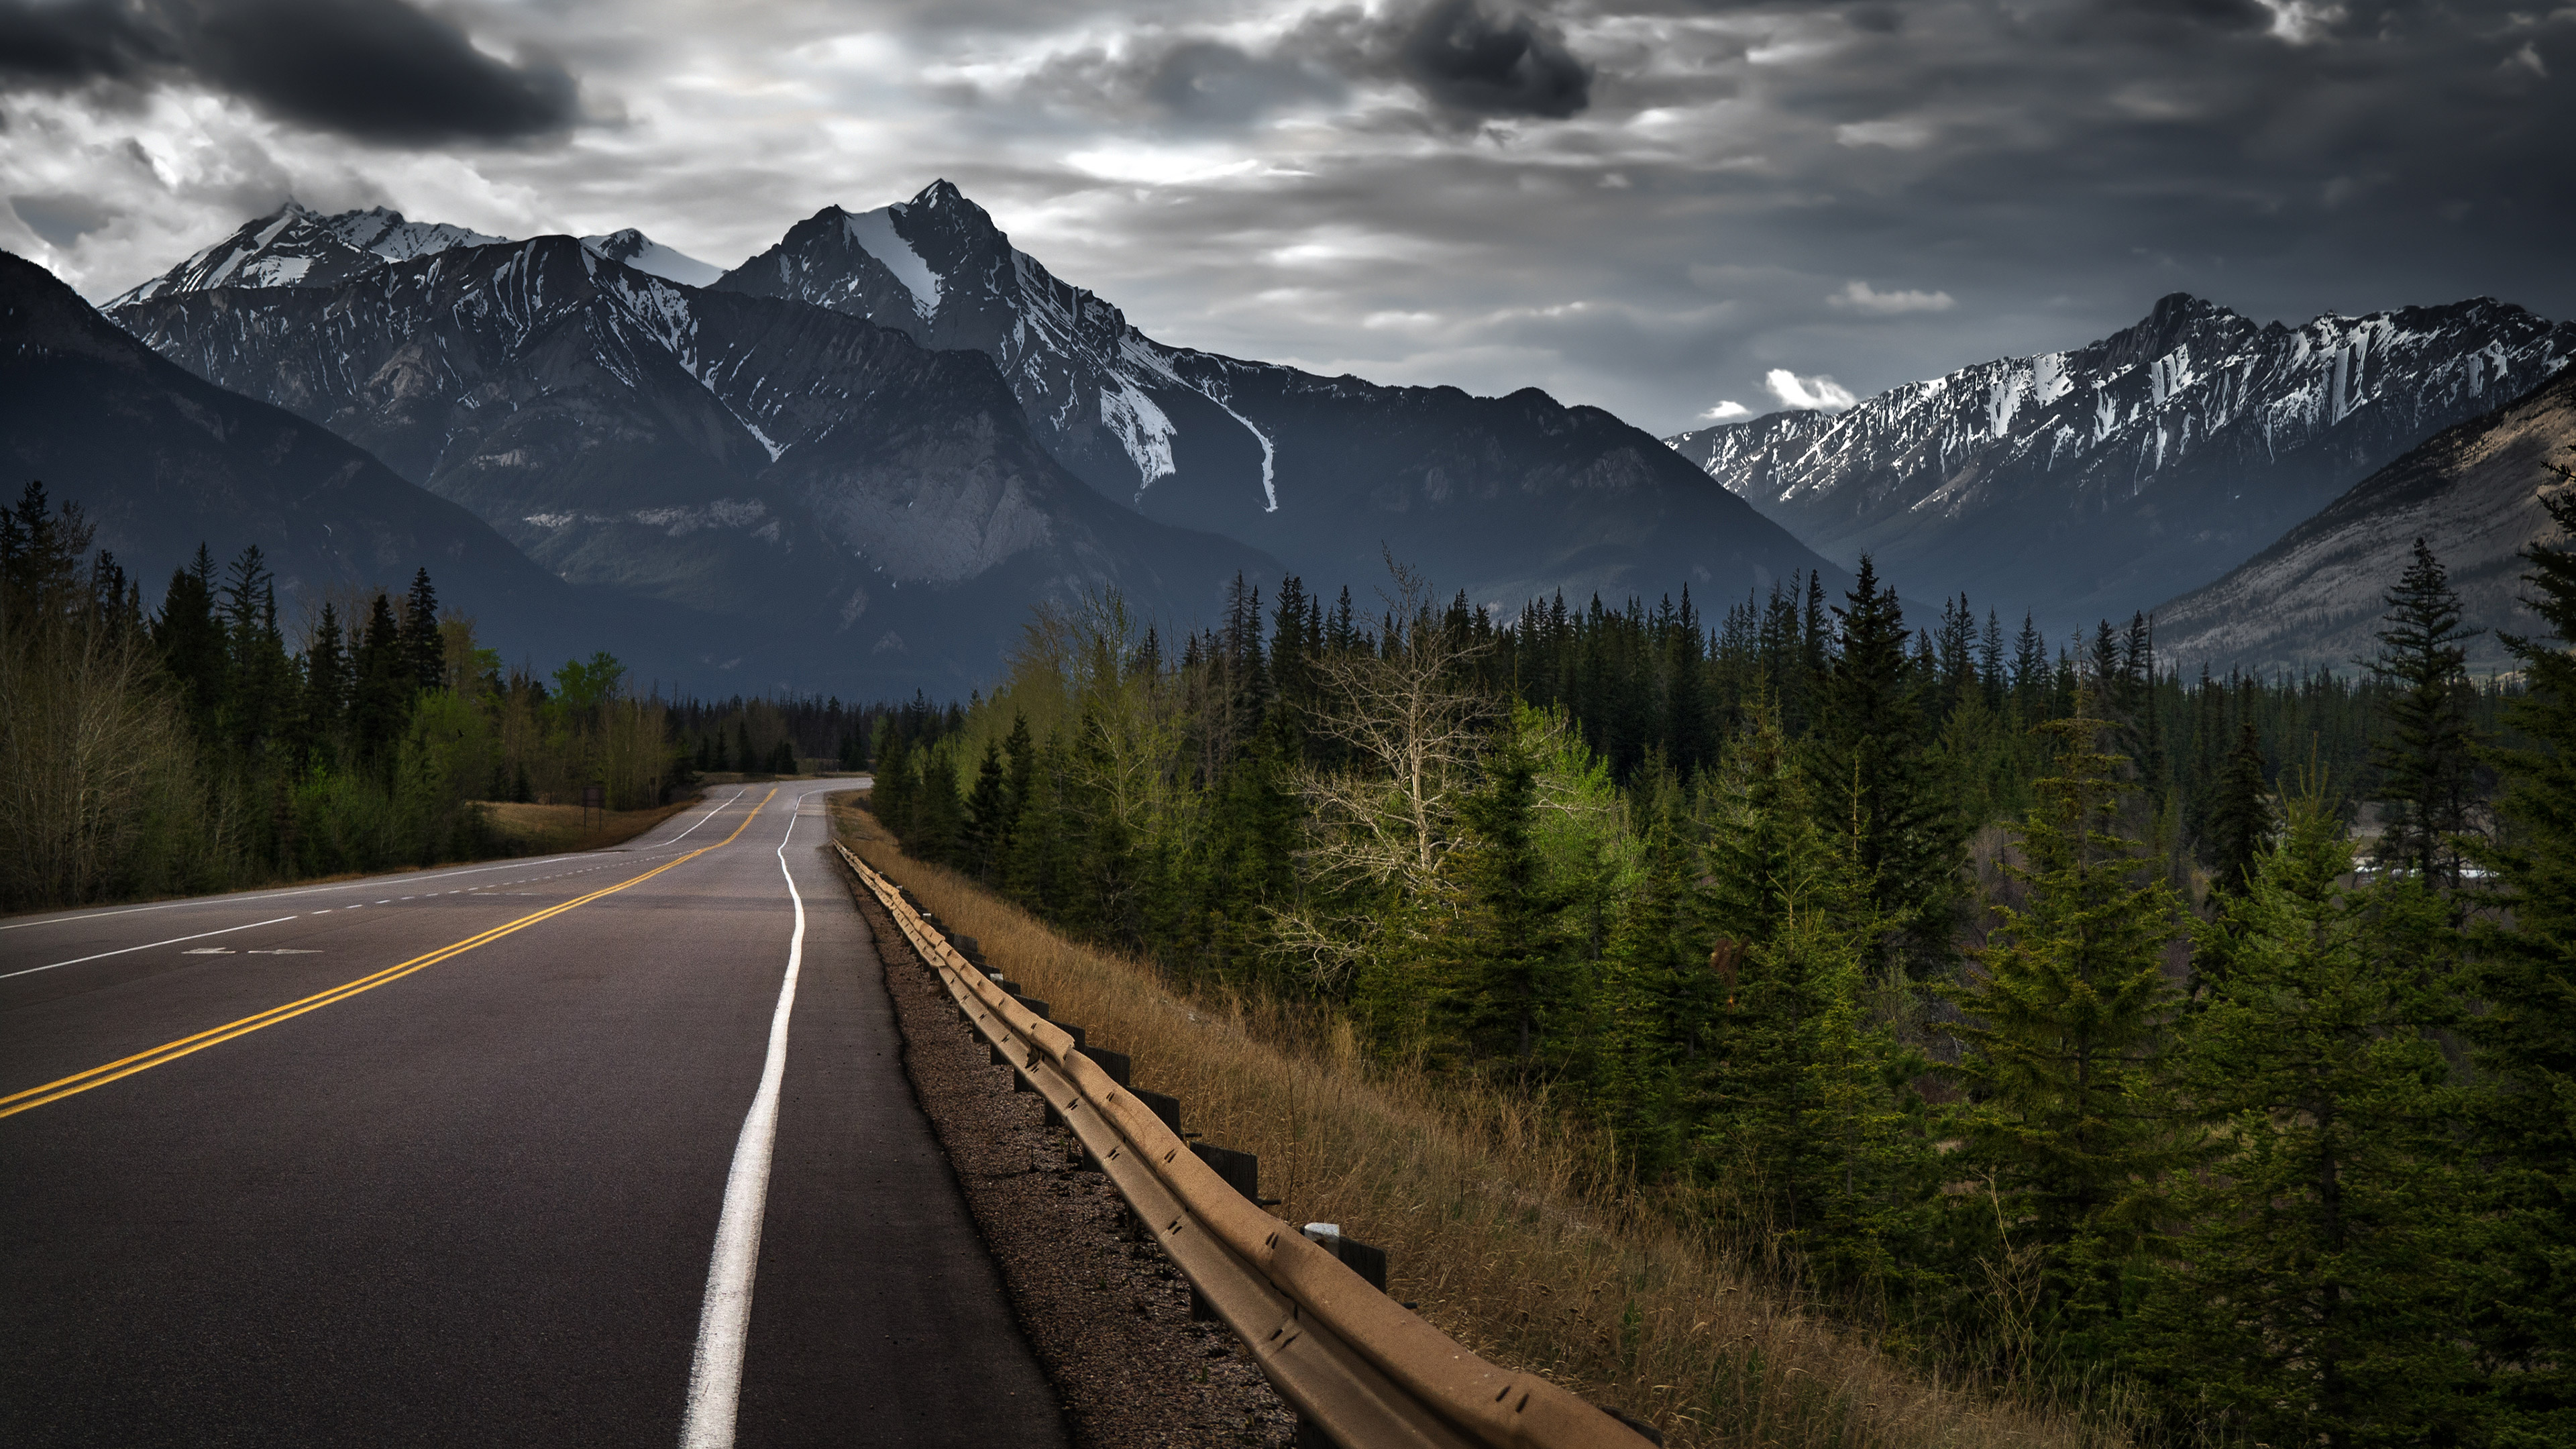 Road To Mountains HD Nature 4k Wallpapers Images Backgrounds